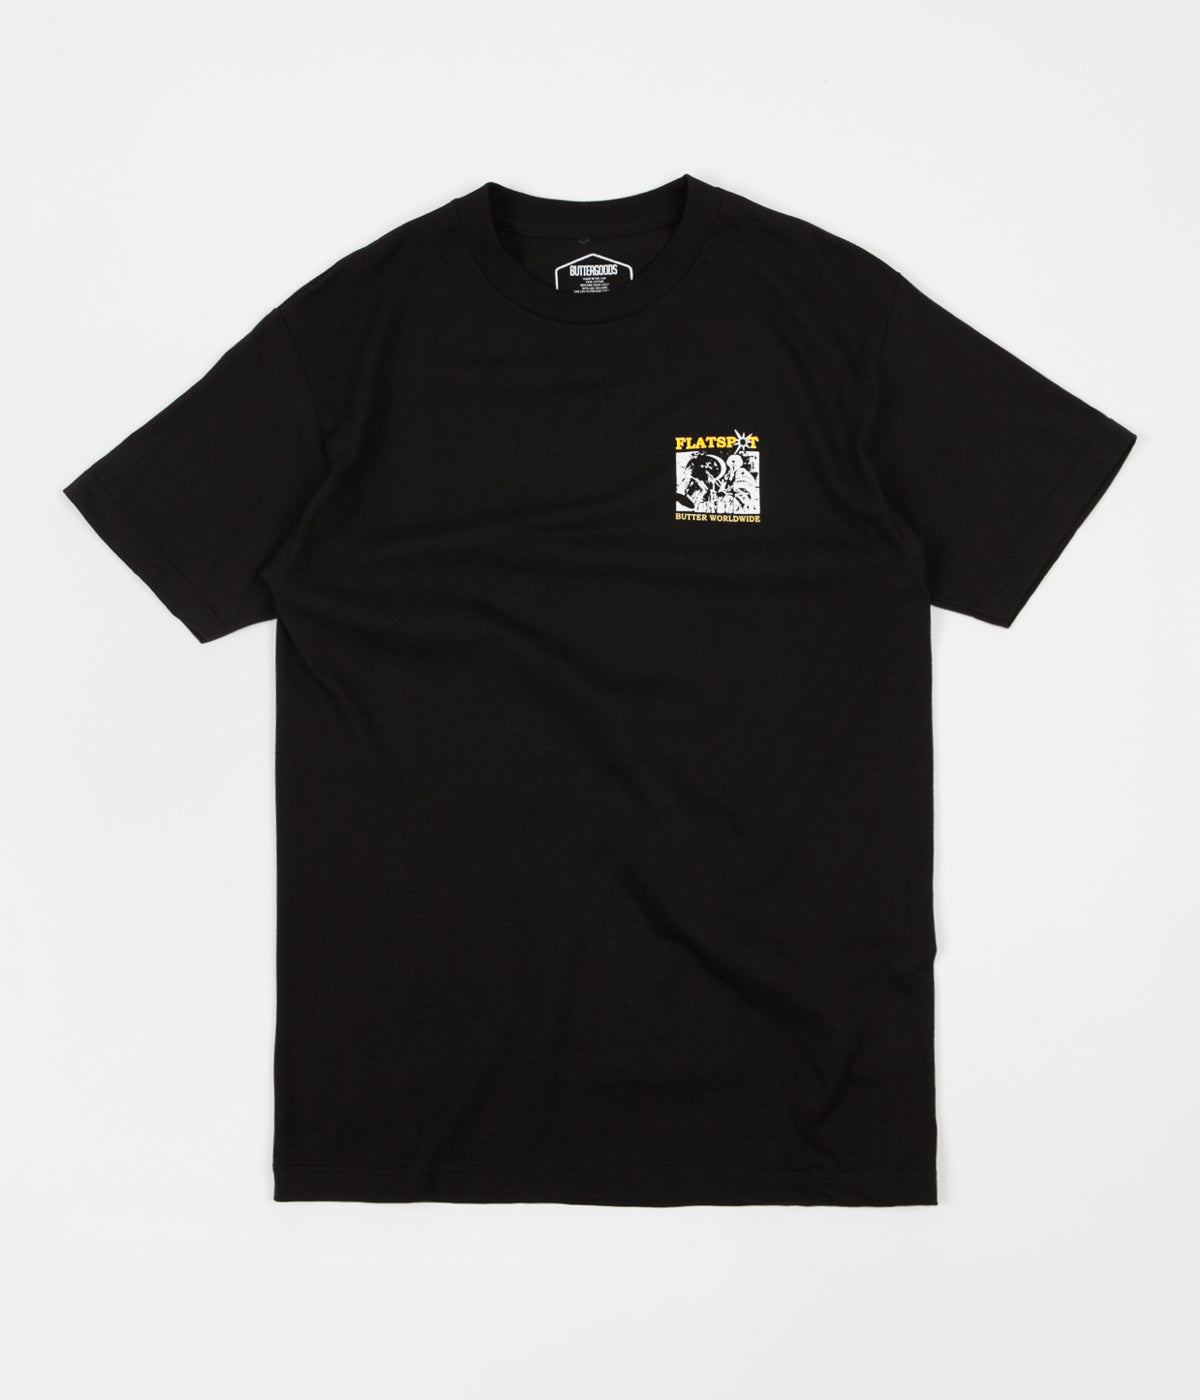 Butter Goods x Flatspot T-Shirt - Black